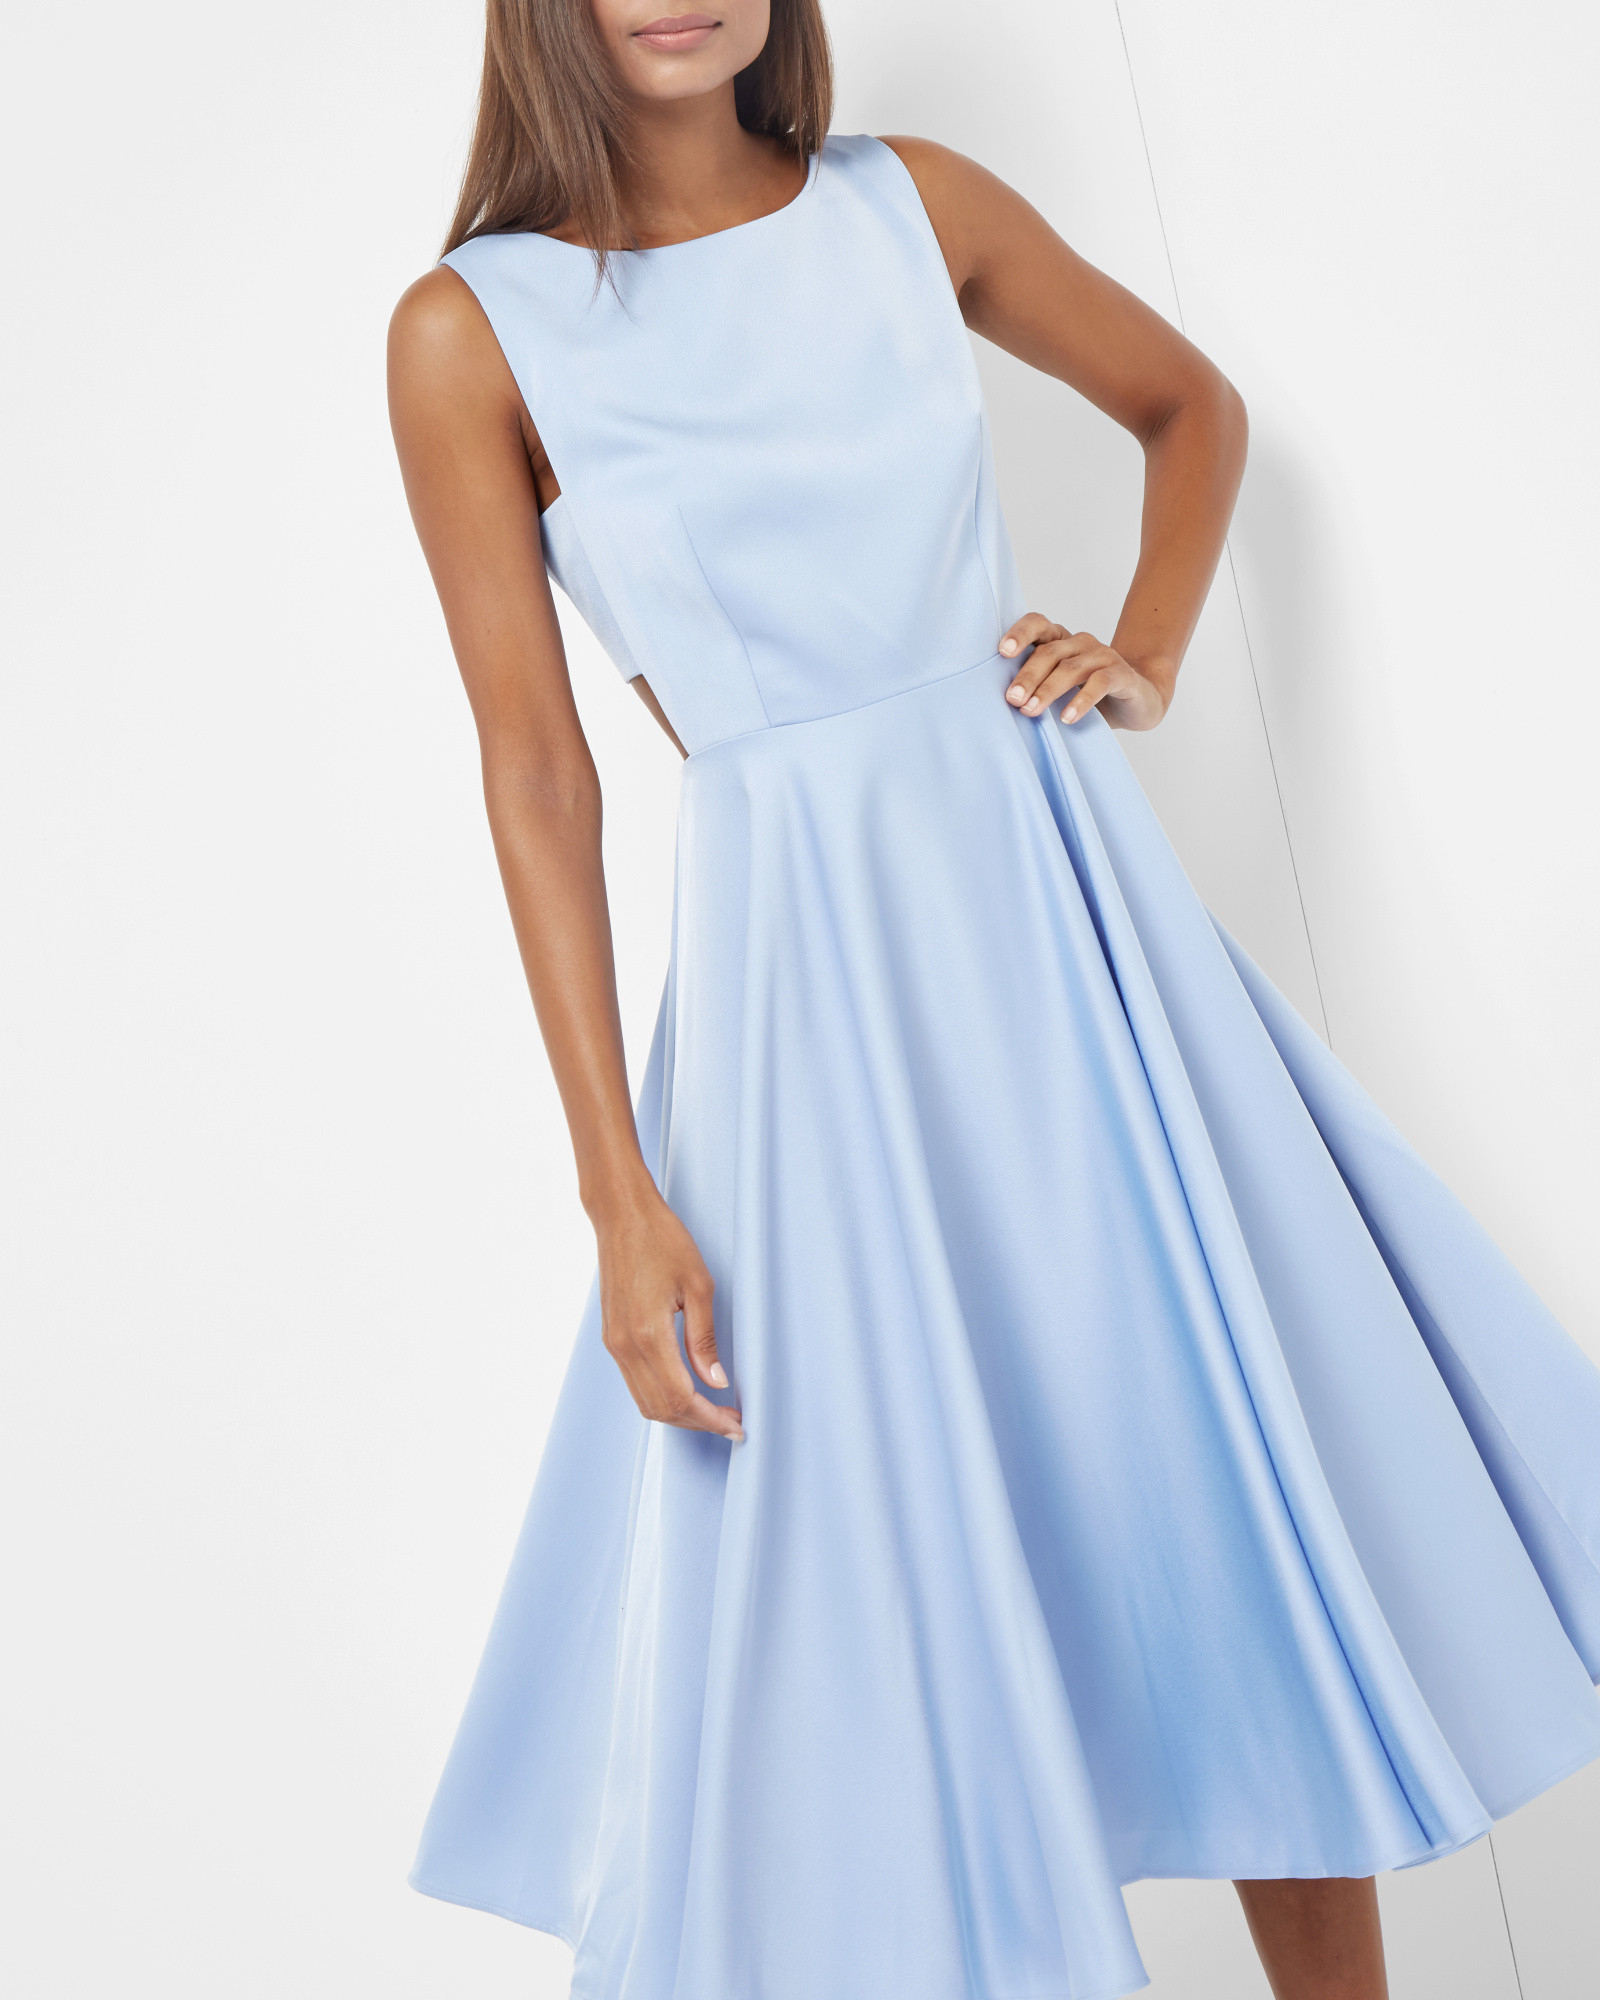 3db4aaec2 Lyst - Ted Baker Cut-out Midi Dress in Blue